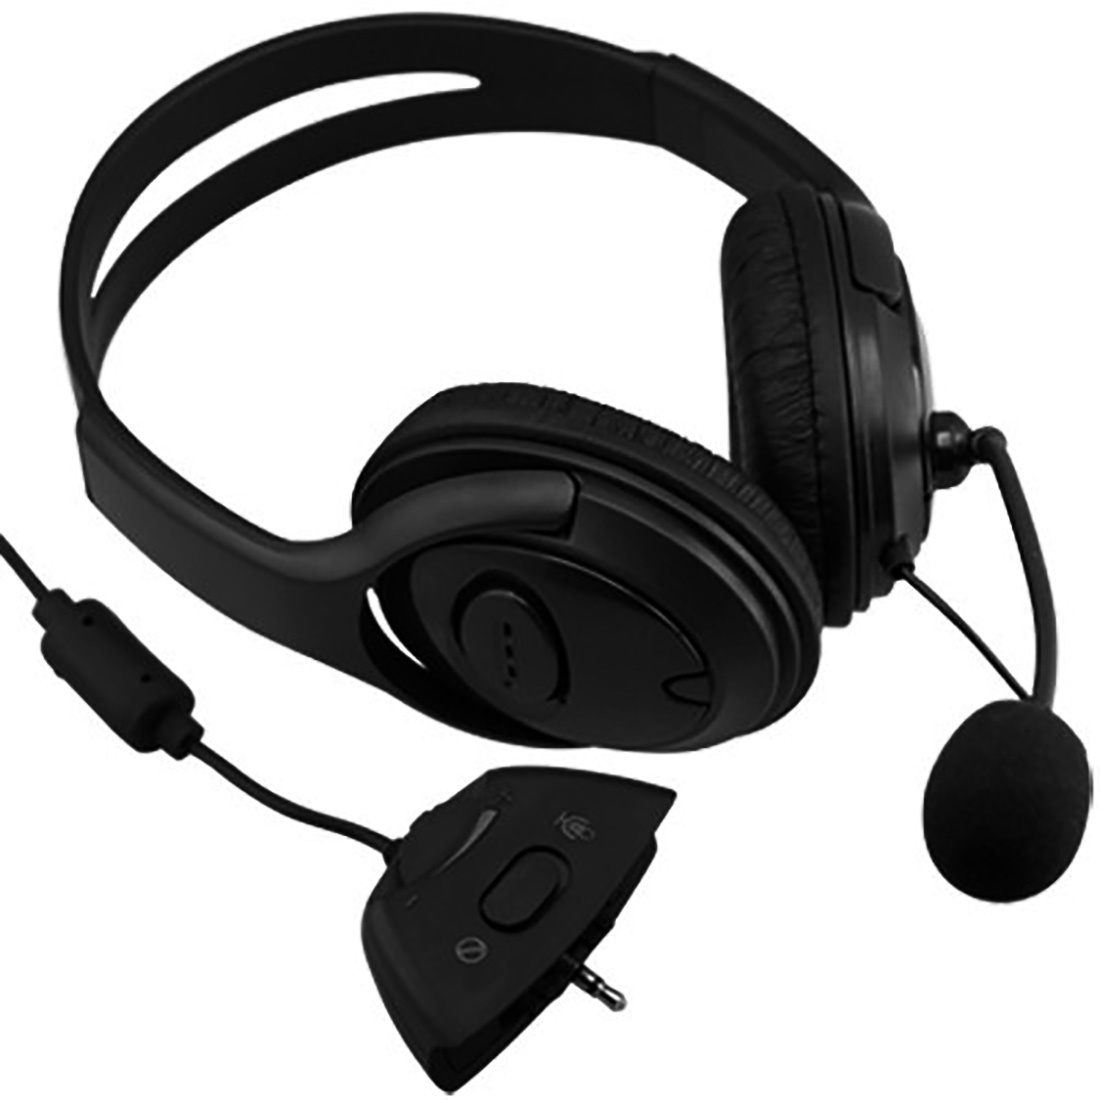 1 x headphone with microphone for xbox 360